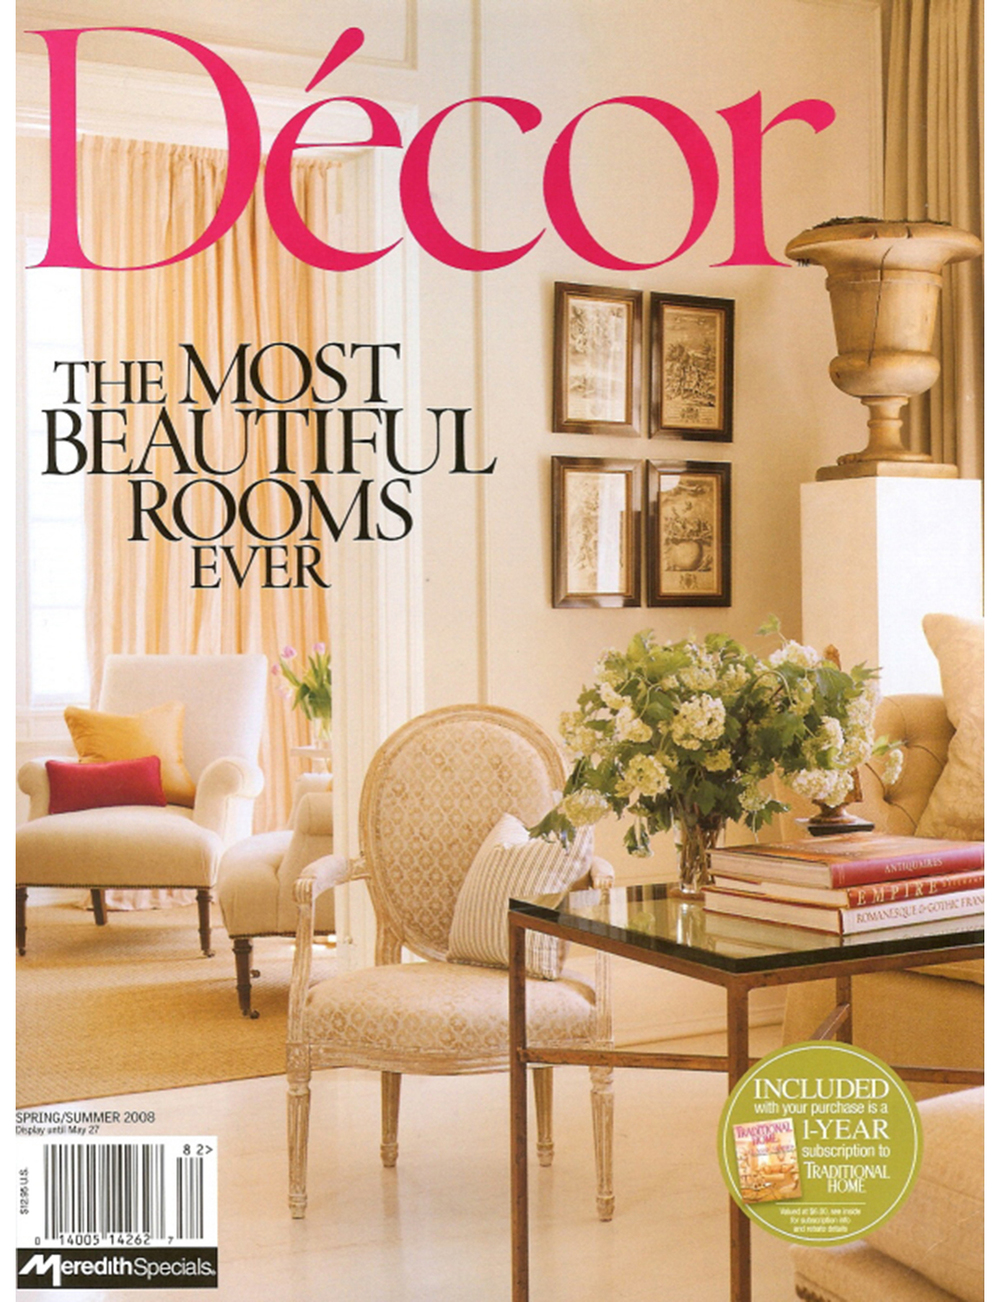 Decor Magazine -  Spain  - April 2008